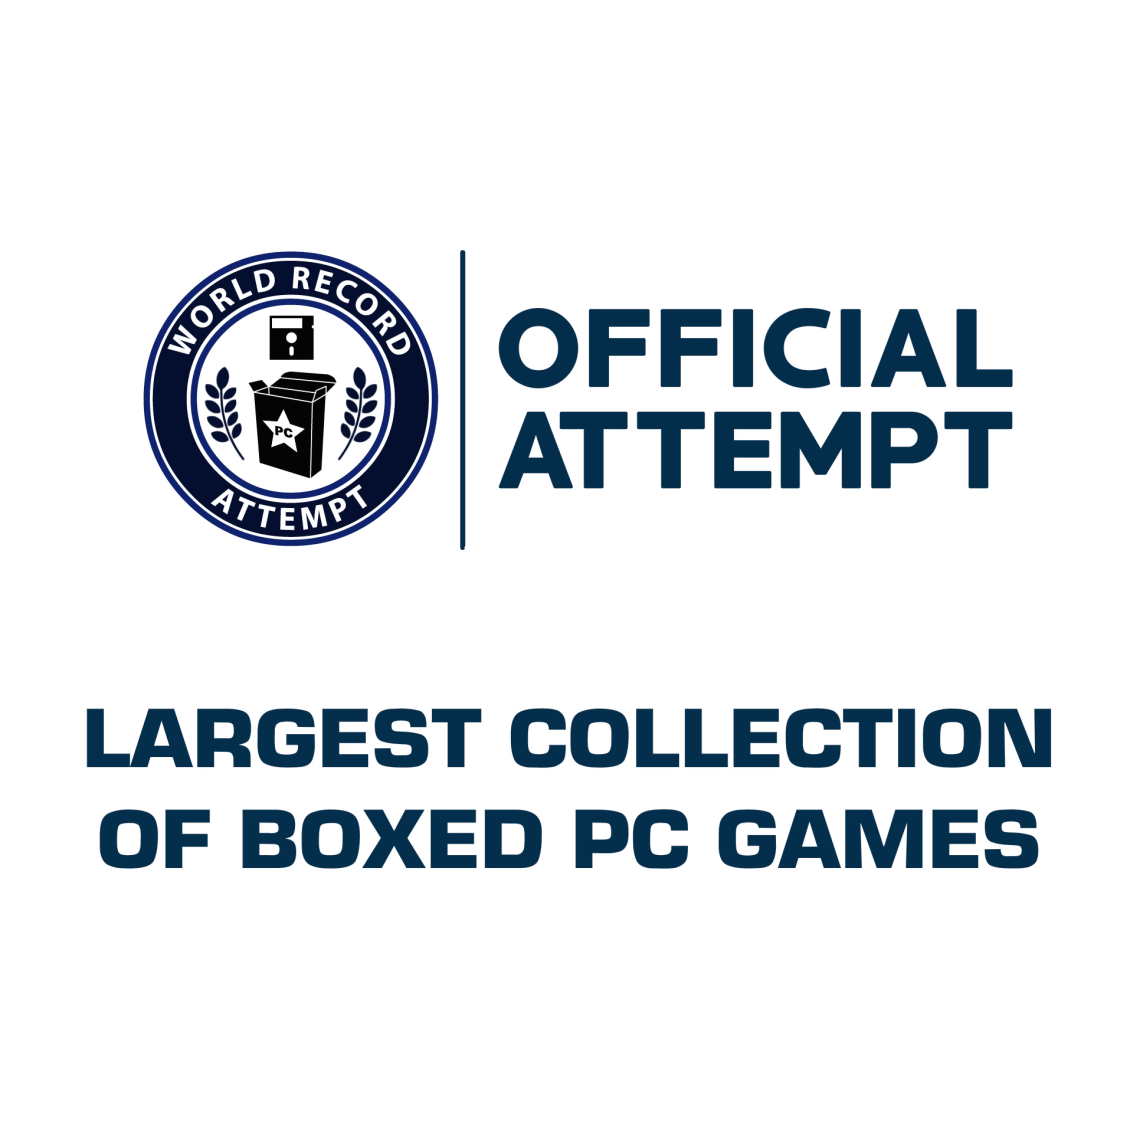 WORLD'S LARGEST COLLECTION OF BOXED PC GAMES - WORLD RECORD ATTEMPT